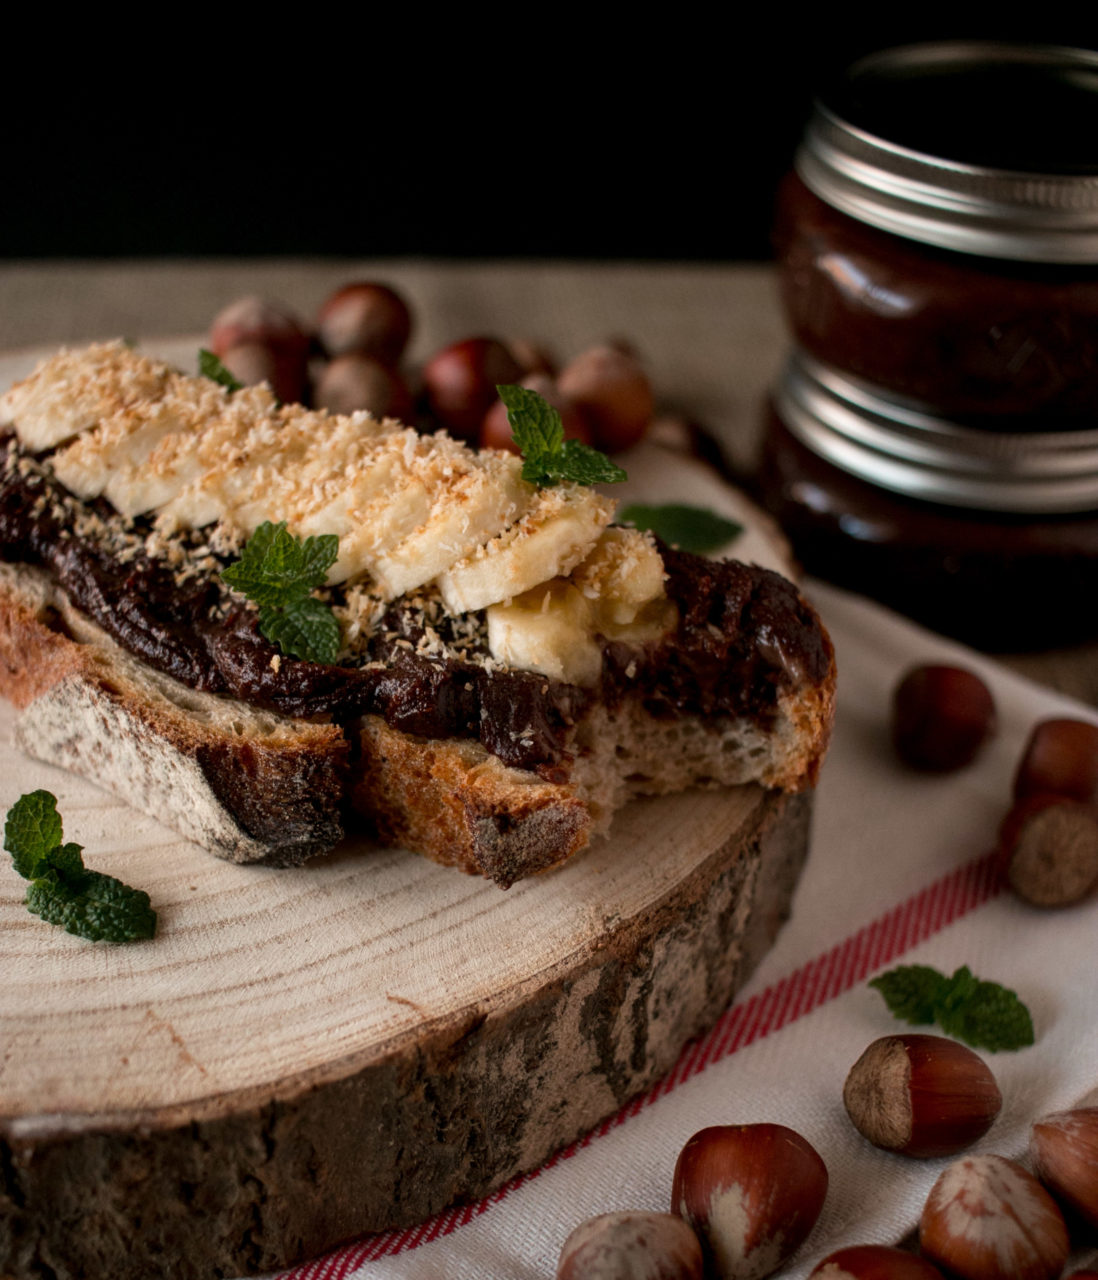 Crema de avellana, macadamia y chocolate casera | Homemade chocolate, hazelnut and macadamia spread